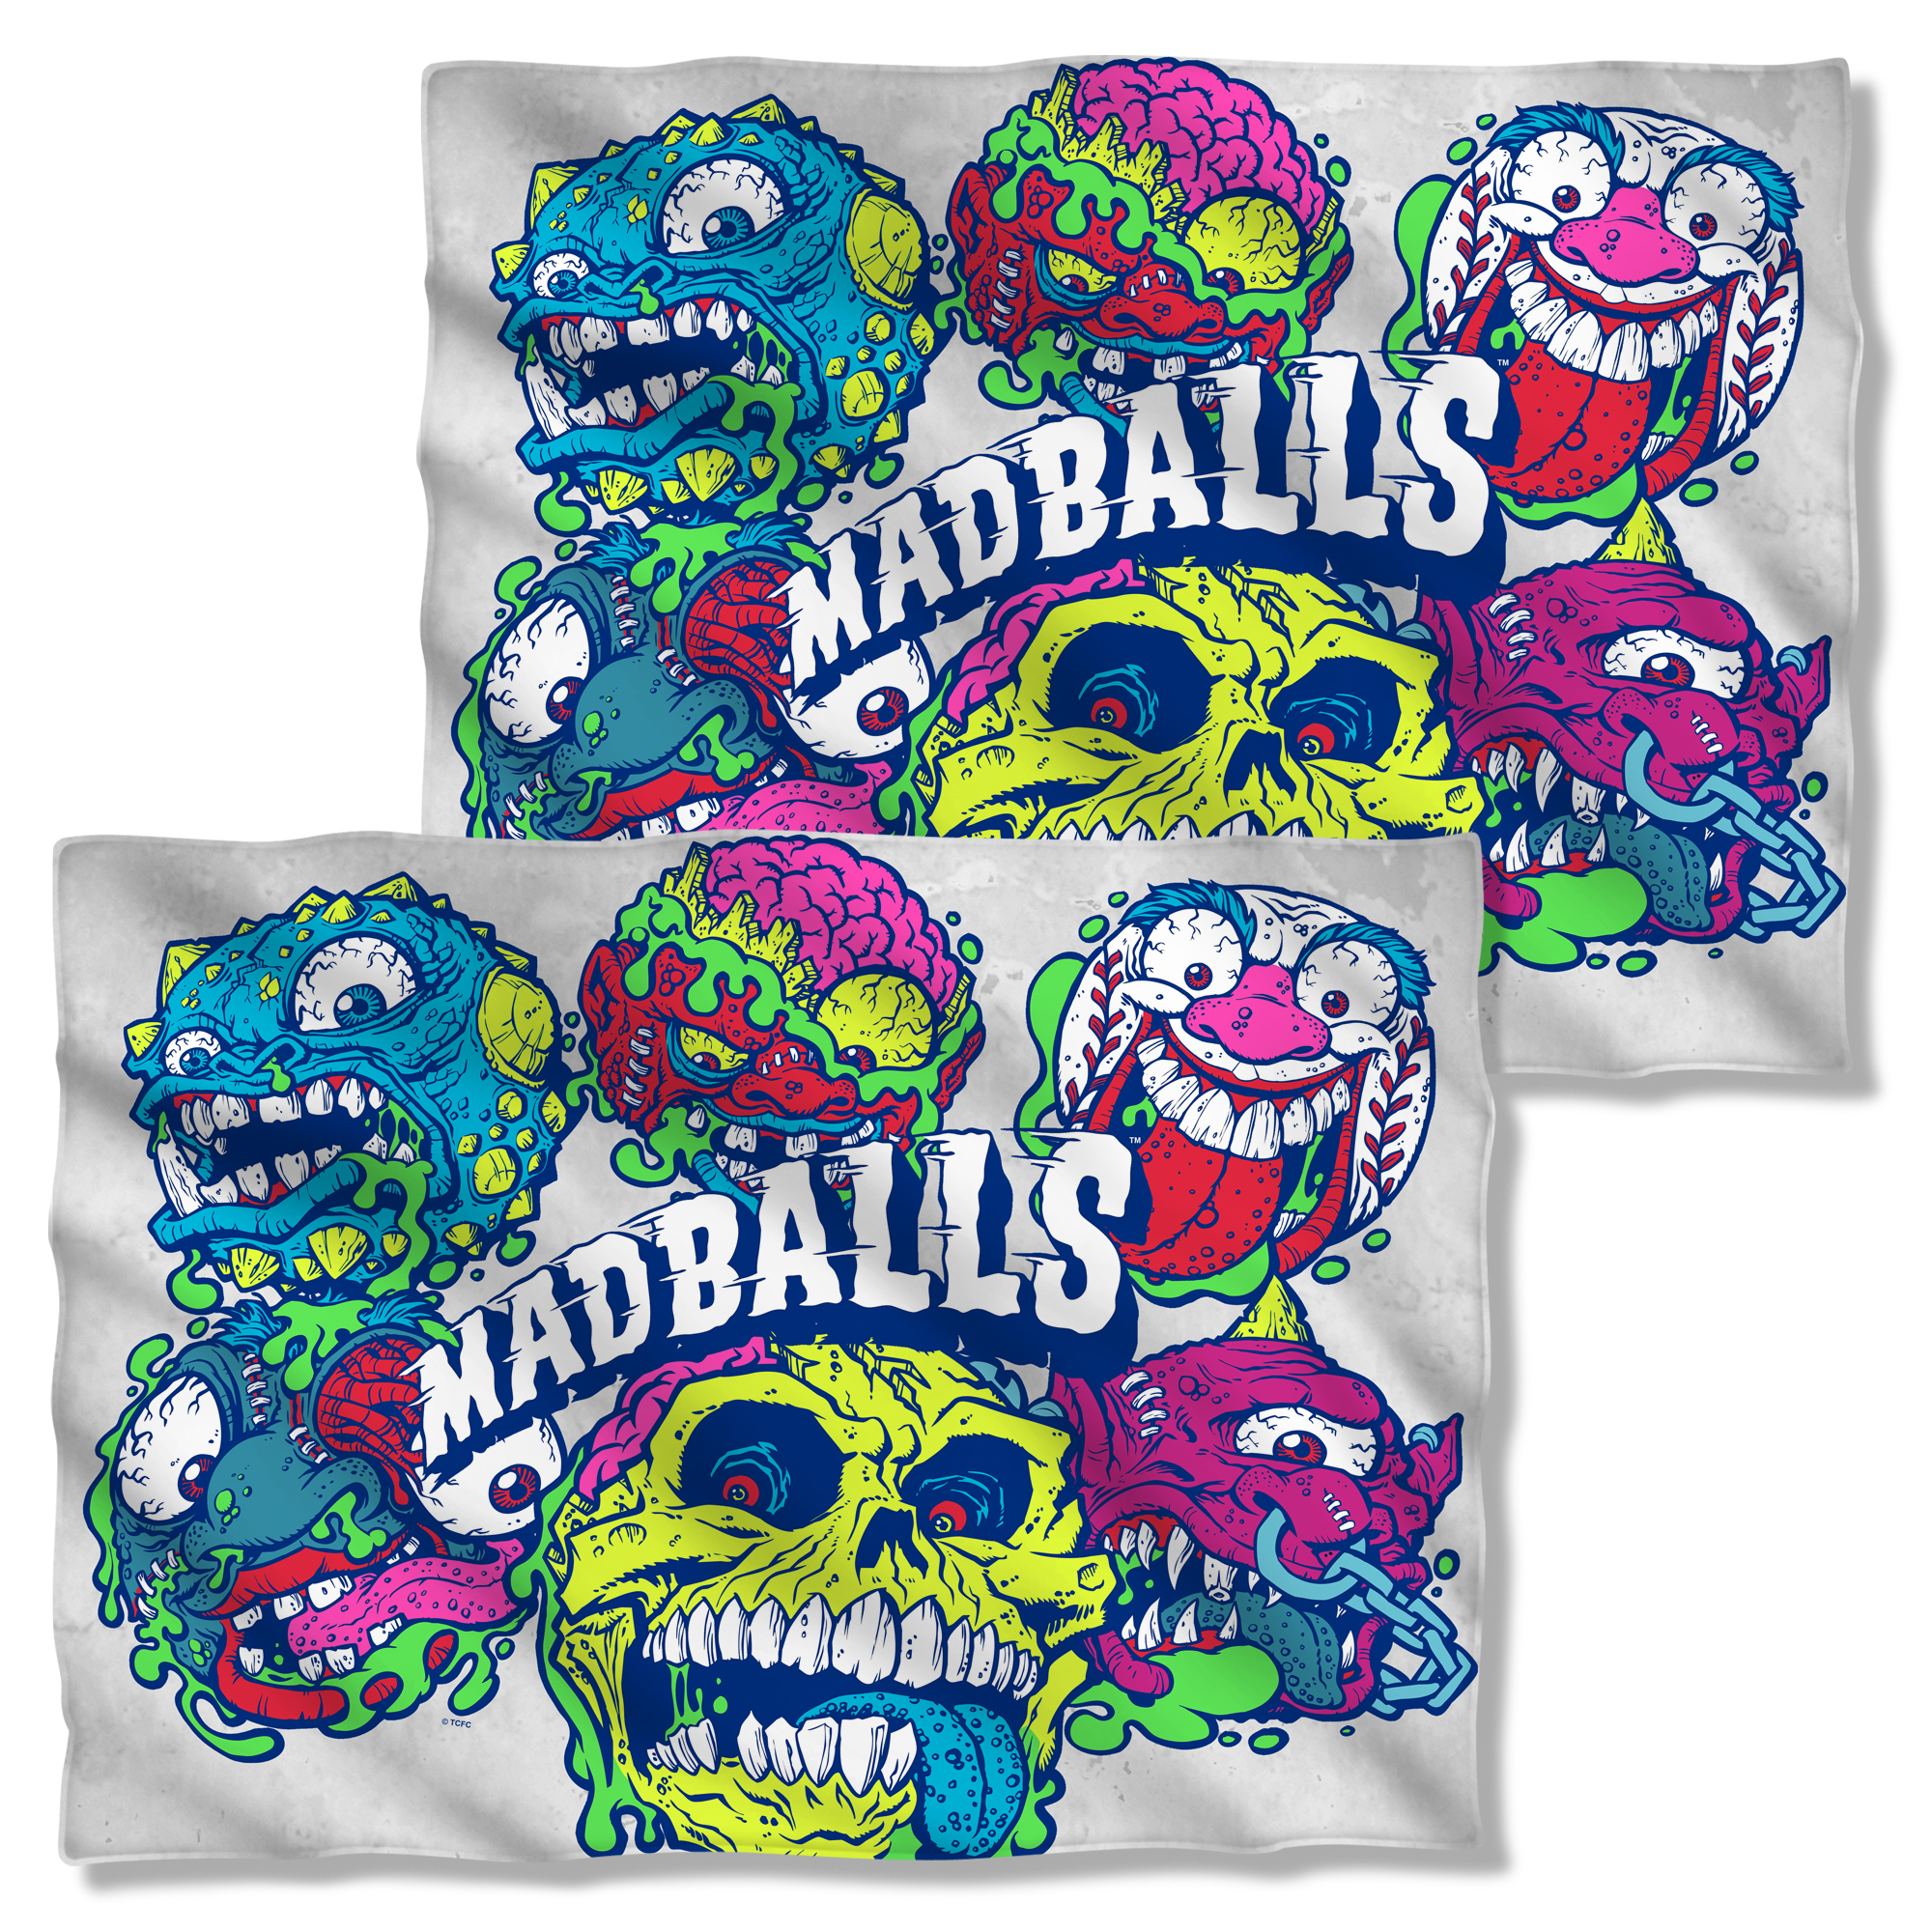 Madballs 1980's Amtoy Rubber Ball Toy Tv Series Squished Front Back Pillow Case